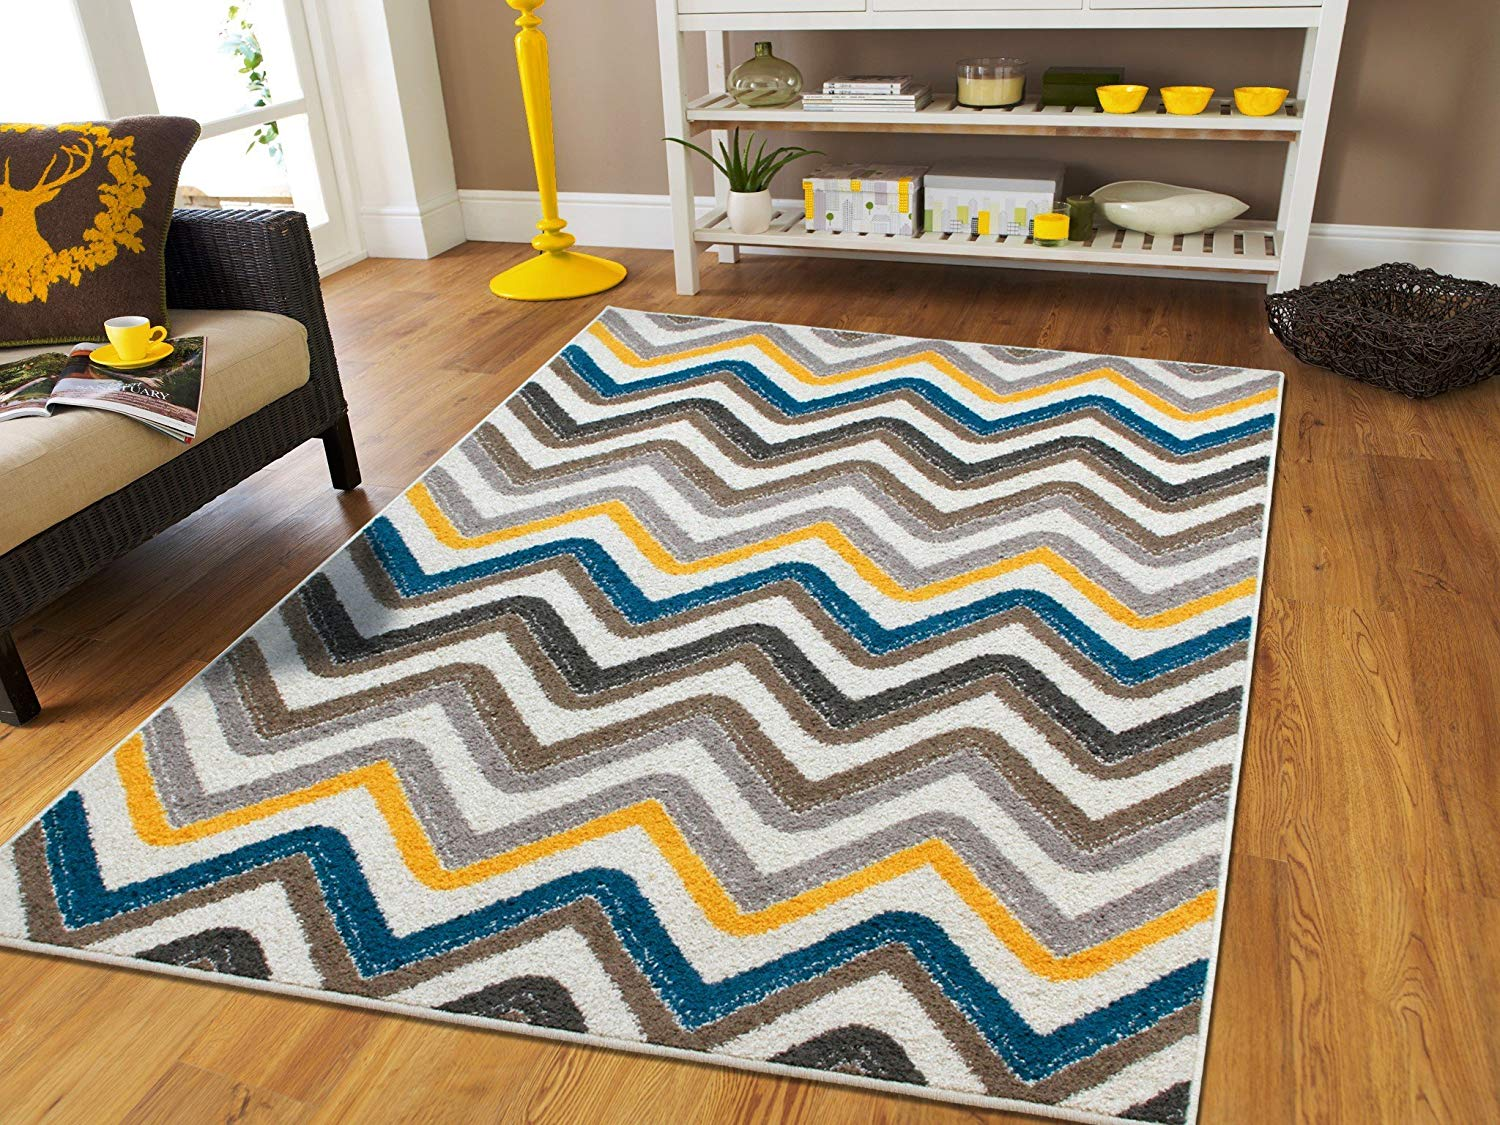 Clearance area rugs amazon.com: new fashion zigzag style large area rugs 8x11 clearance under  100 EELWZXX